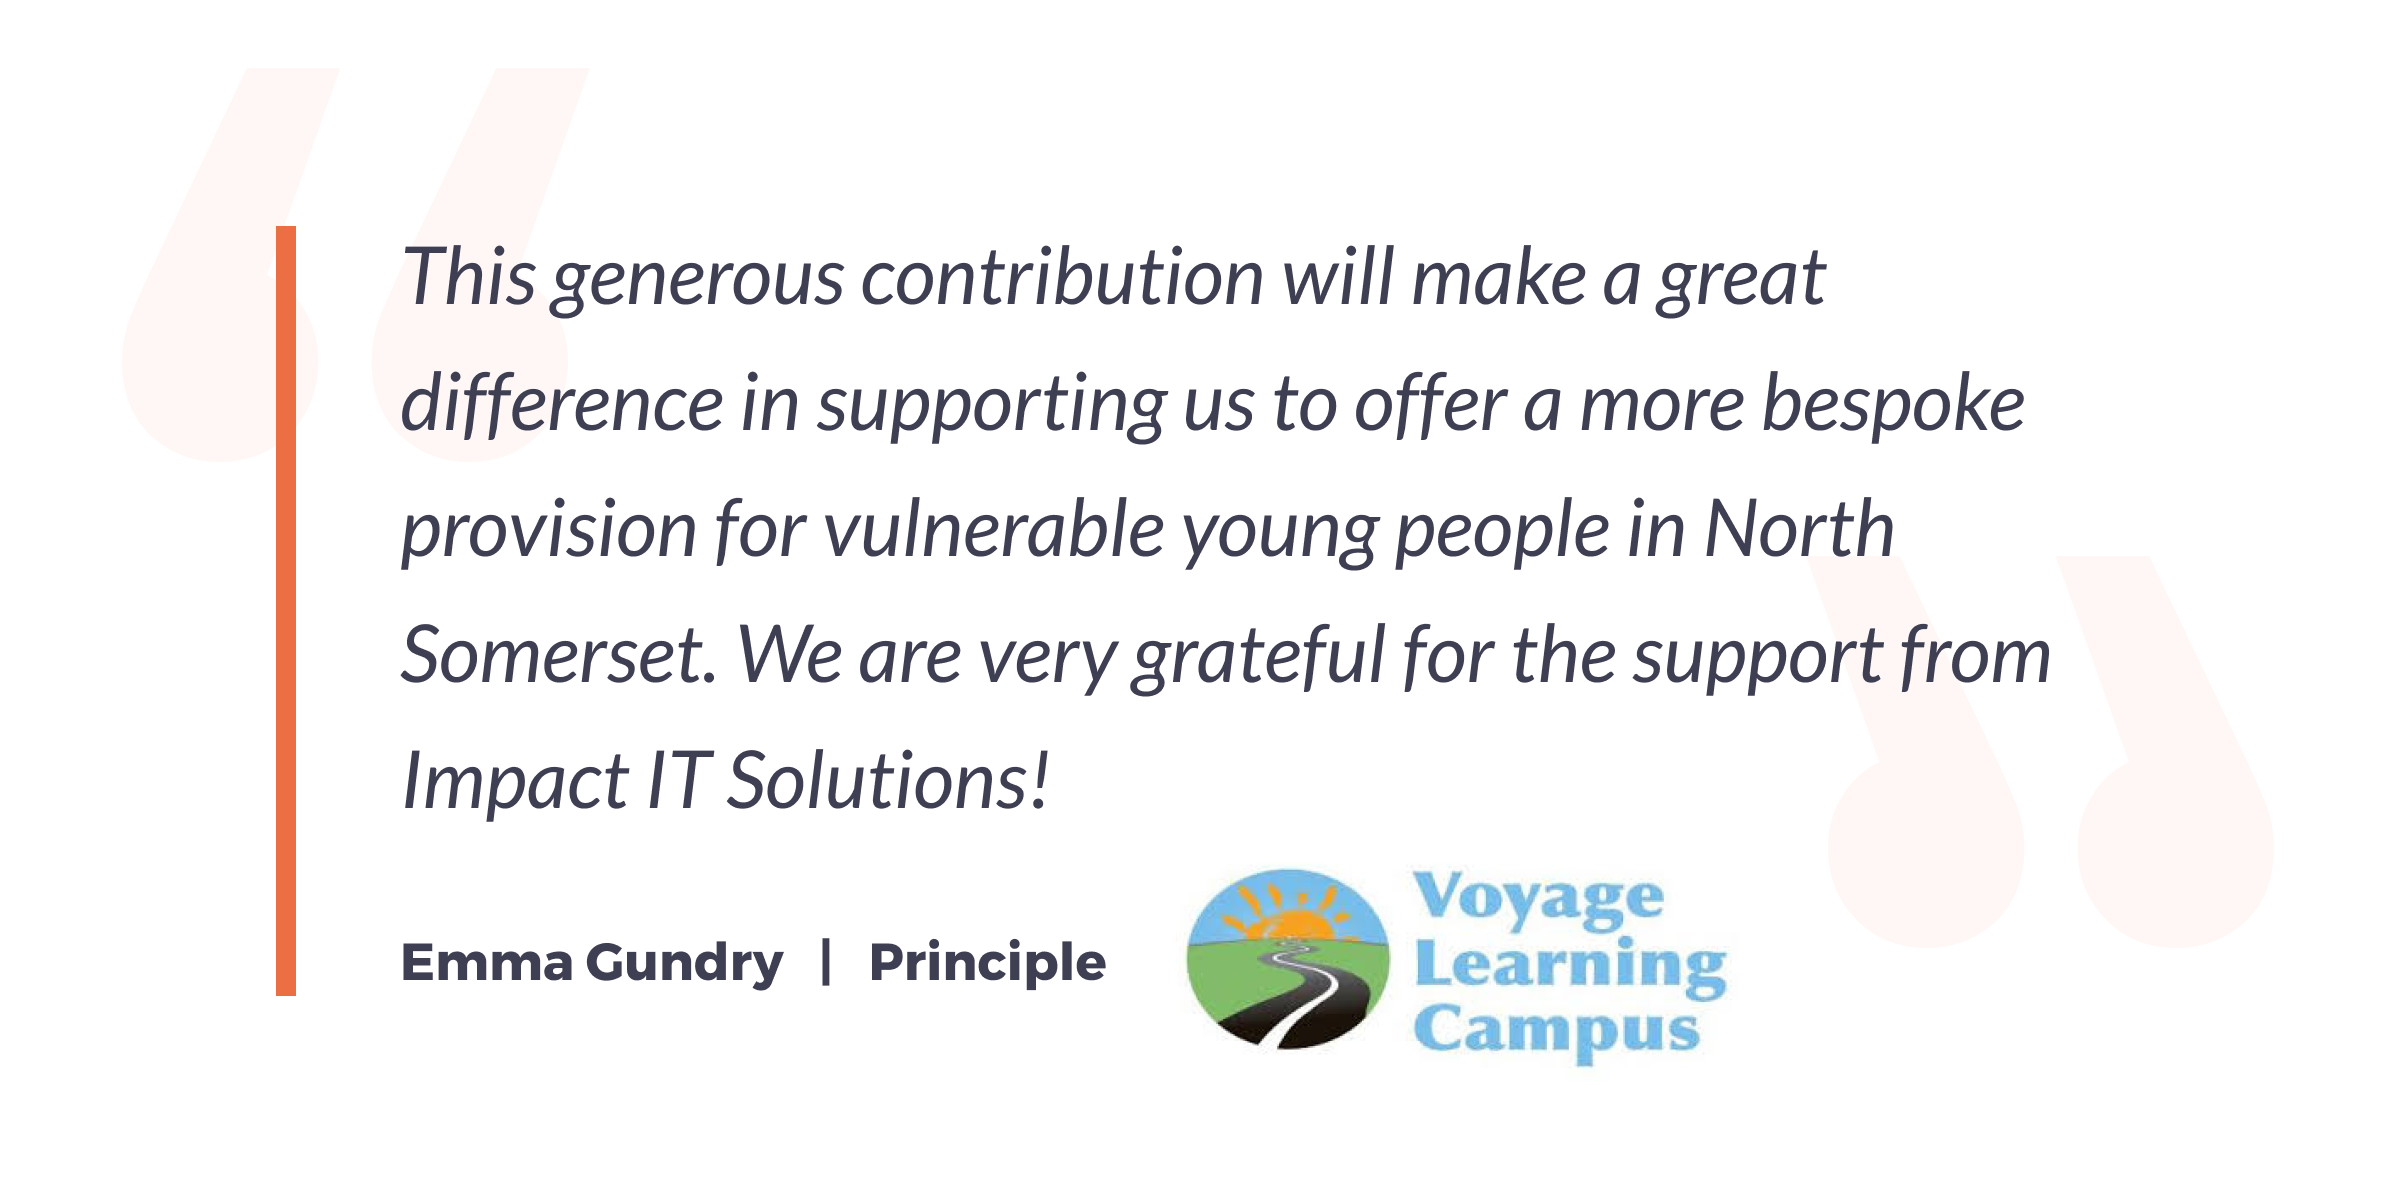 This generous contribution will make a great difference in supporting us to offer a more bespoke provision for vulnerable young people in North Somerset. We are very grateful for the support from Impact IT Solutions.